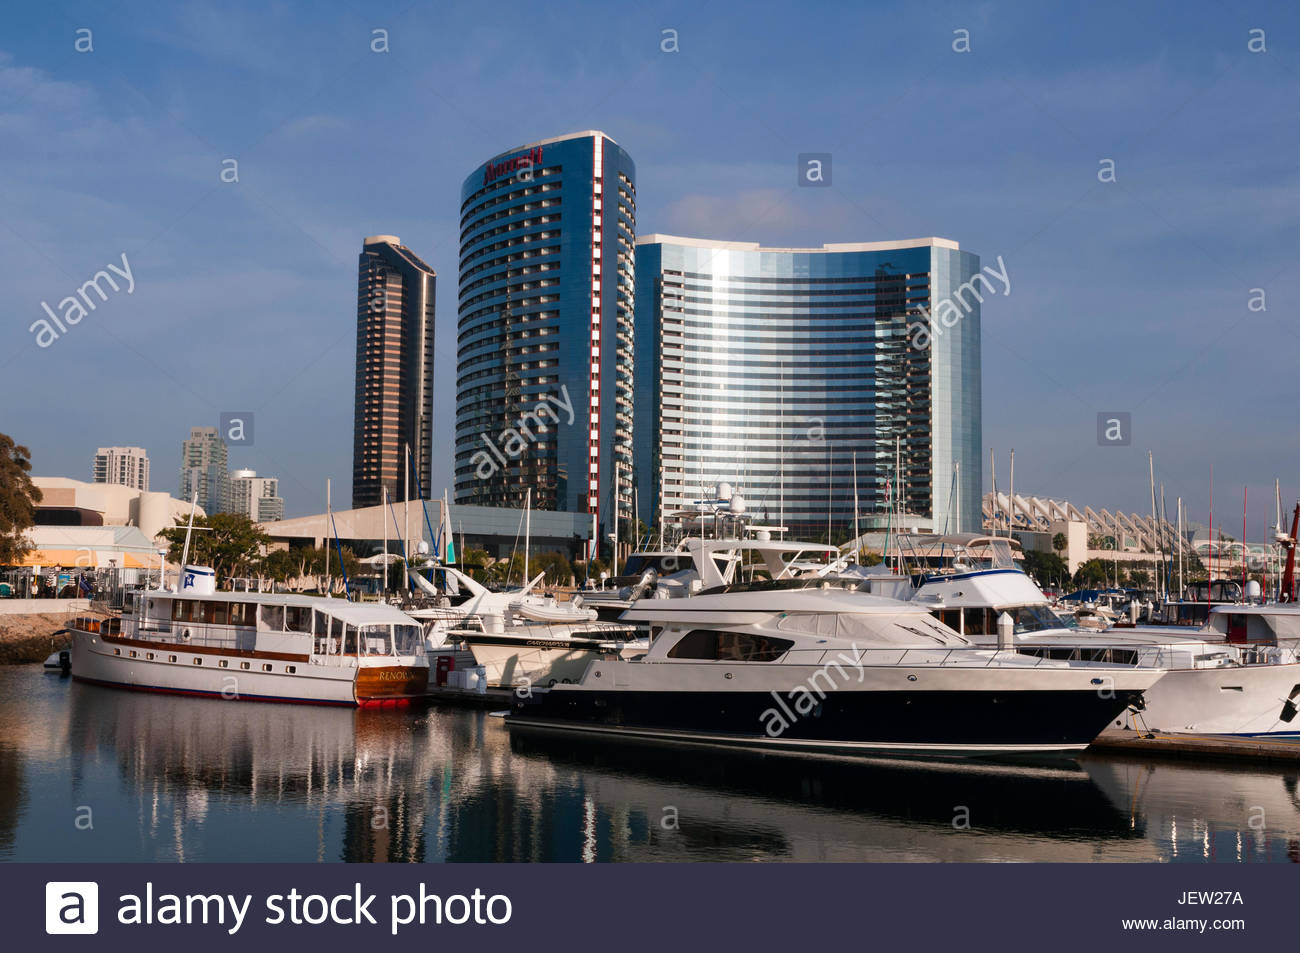 Boats anchored in a harbor marina within walking distance of modern hotels. - Stock Image